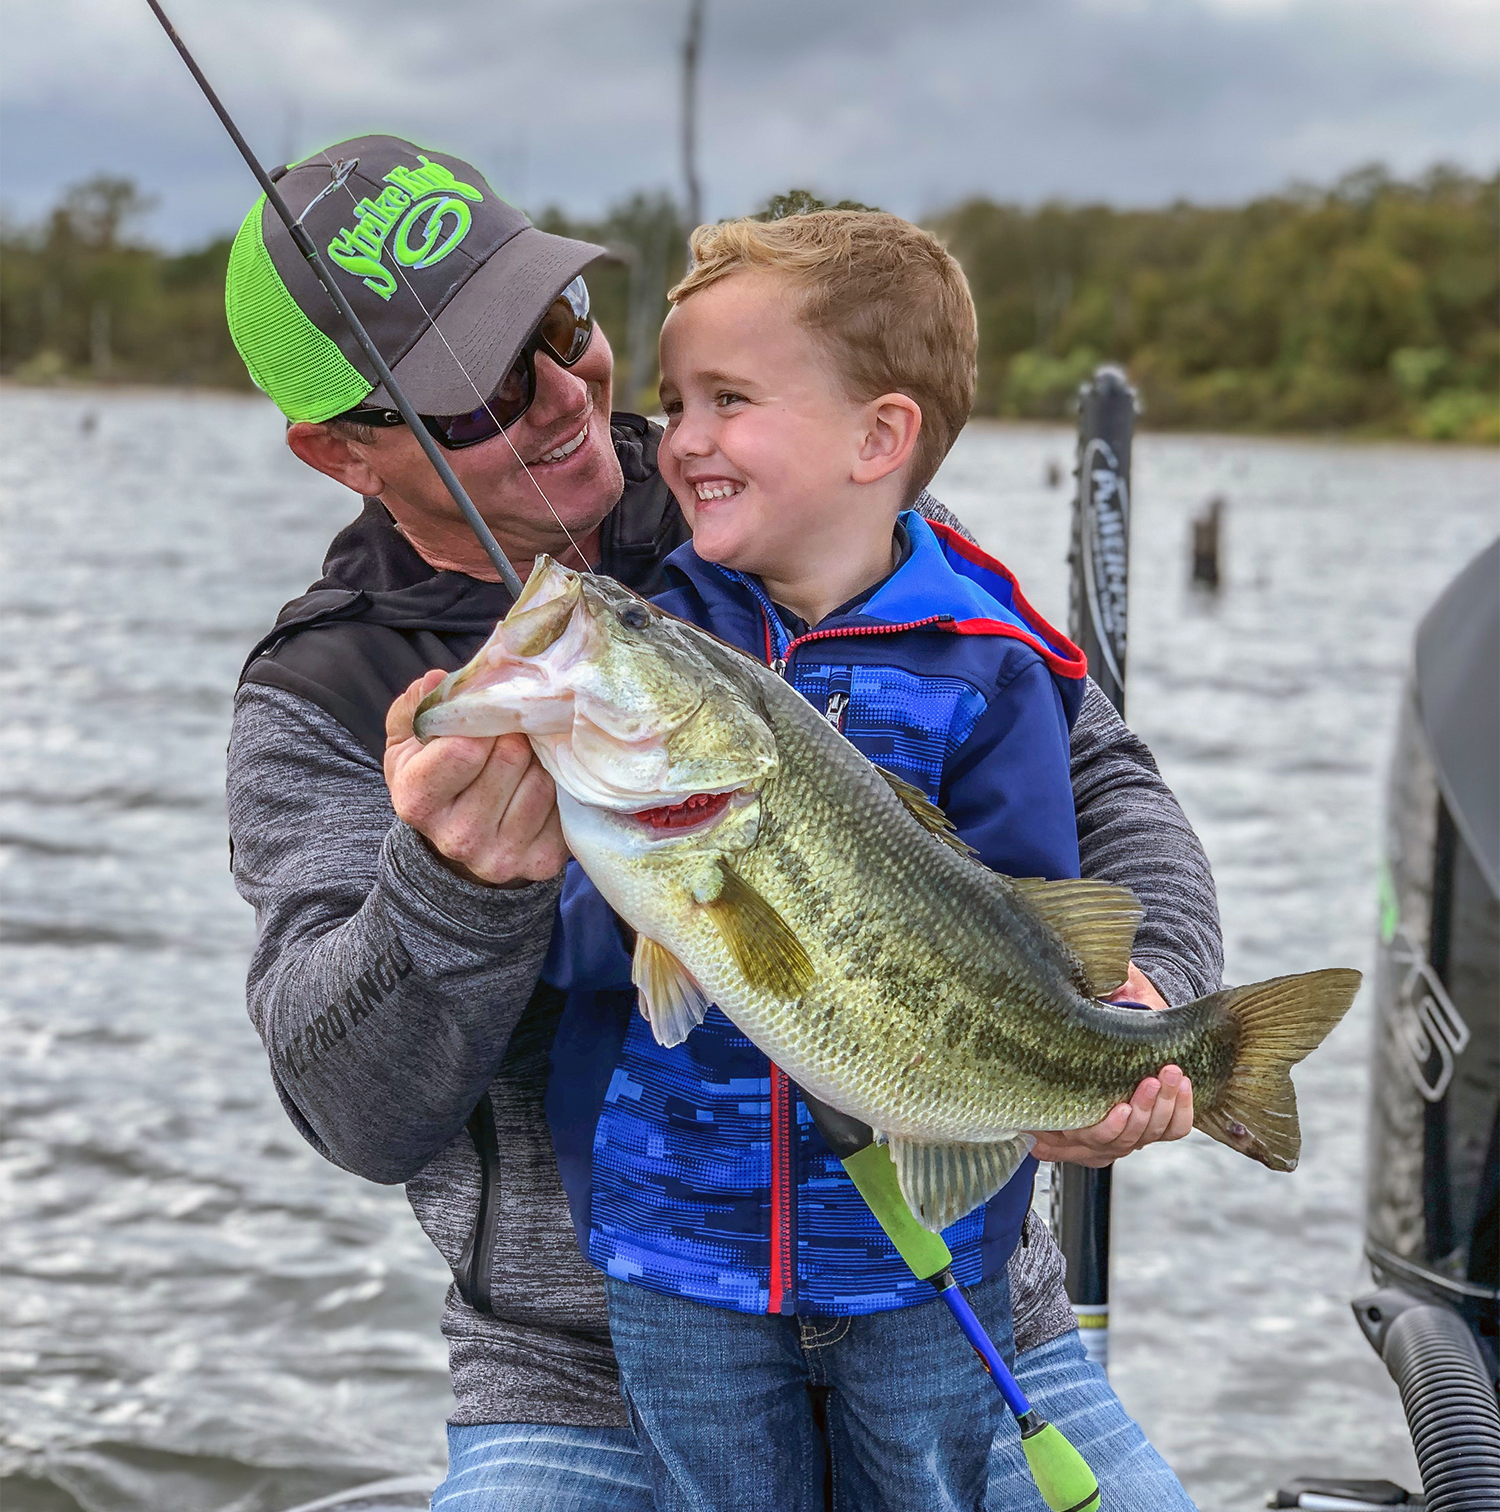 Stage Three 2020 Prepare For Giants When Bass Pro Tour Lands At Lake Fork Major League Fishing